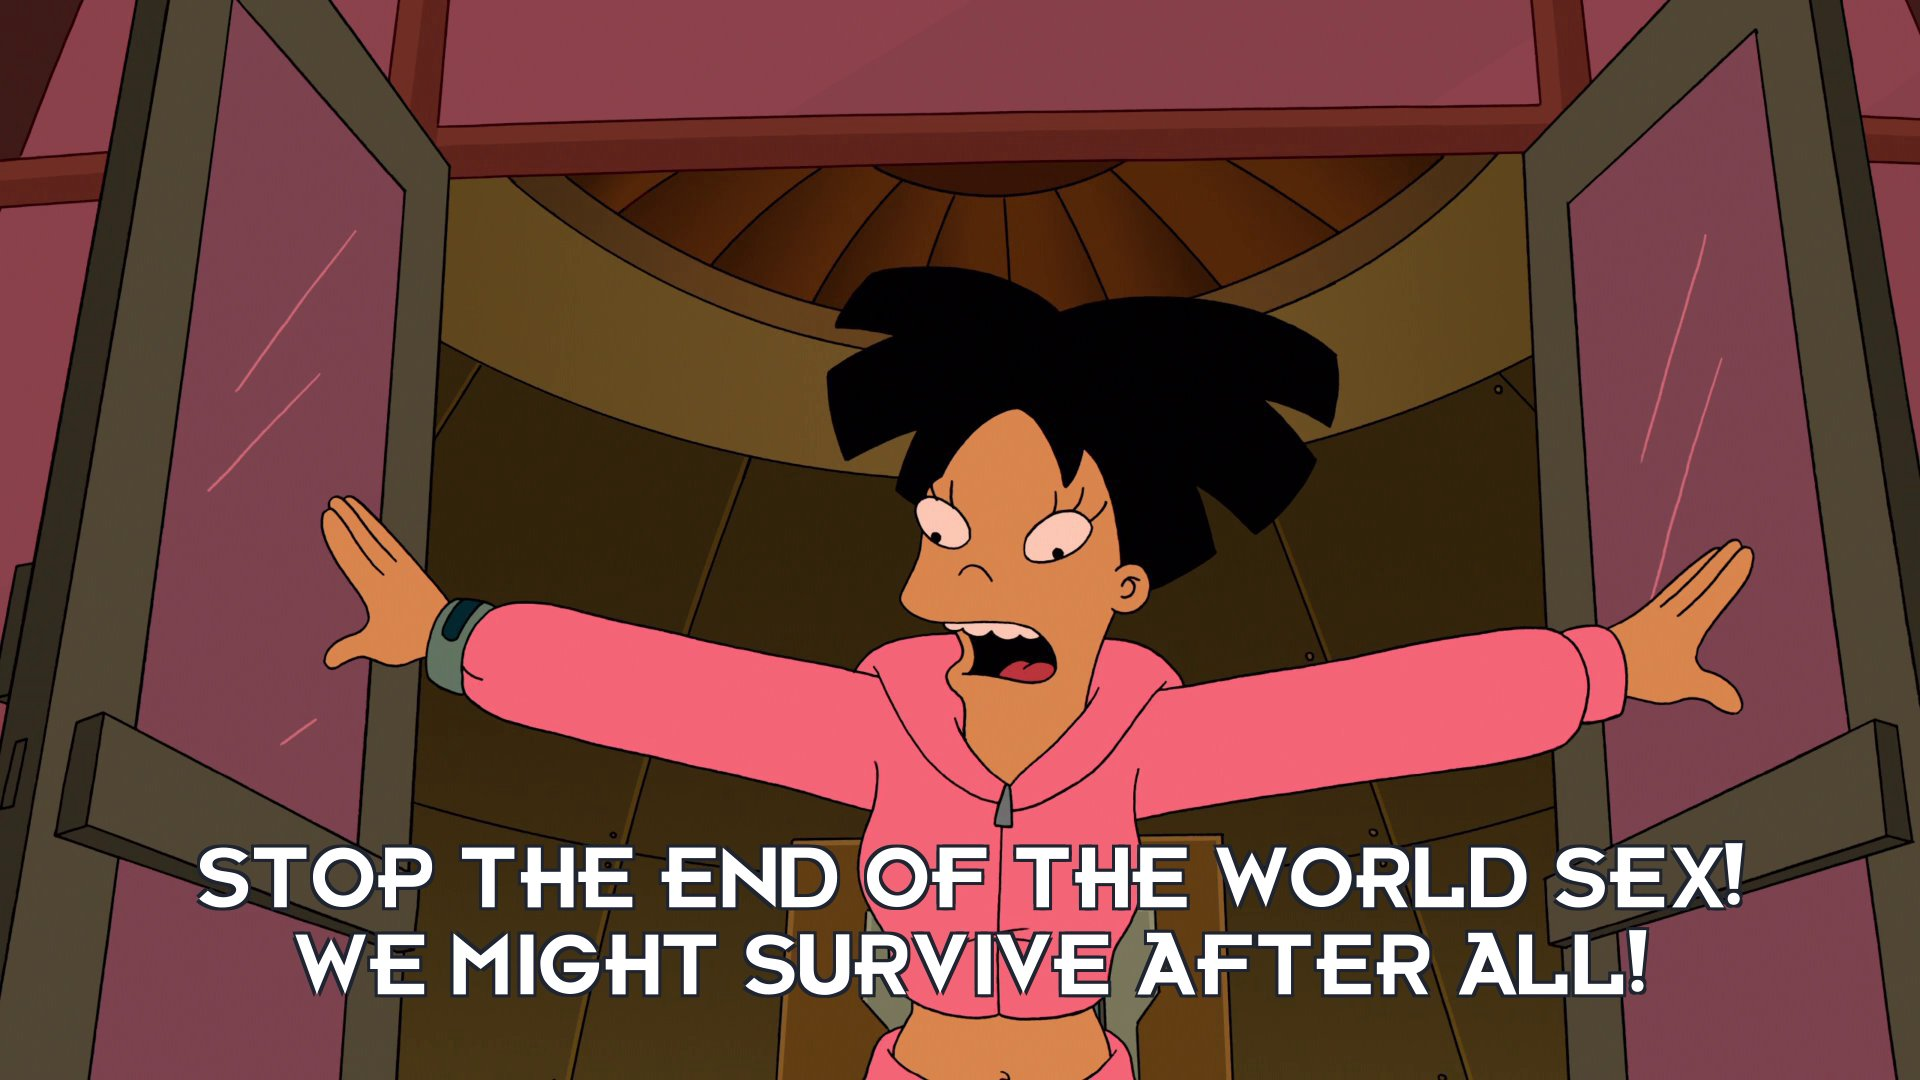 Amy Wong: Stop the end of the world sex! We might survive after all!